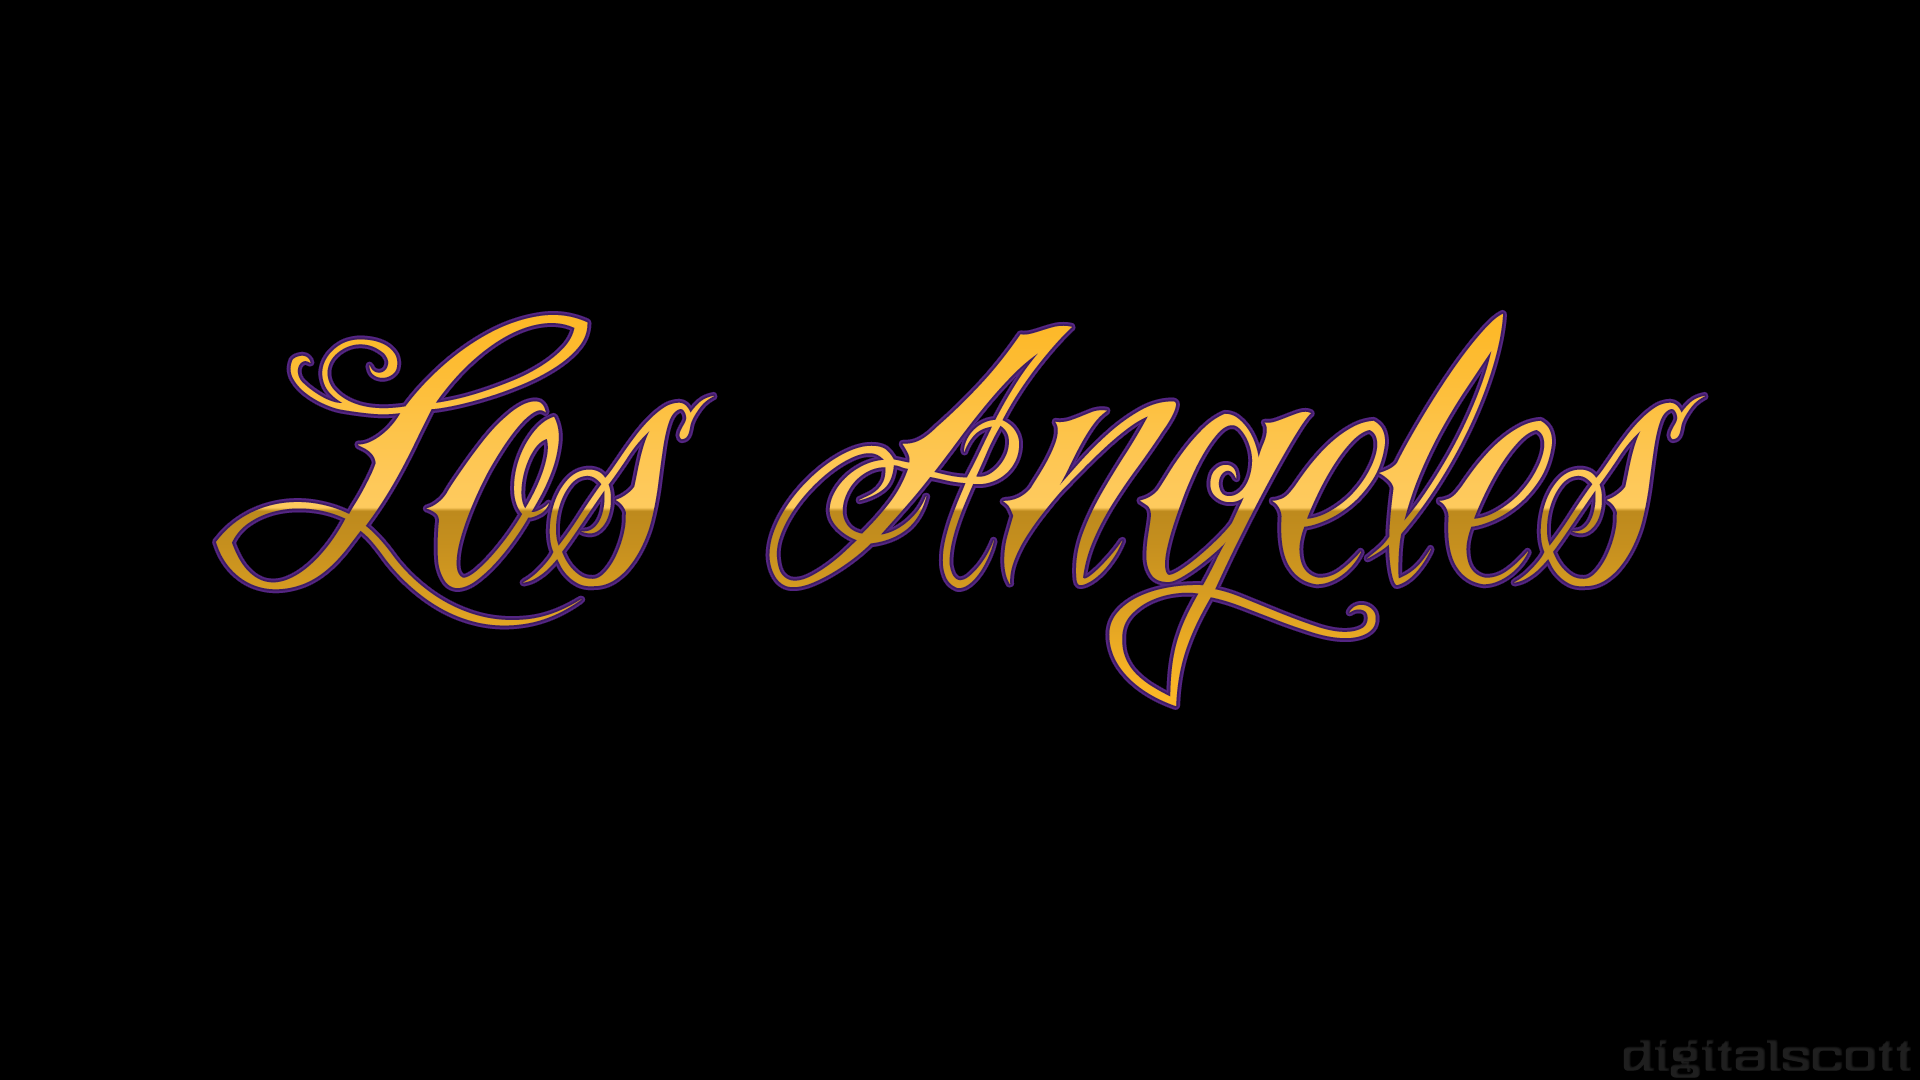 Free Download Los Angeles Lakers Images Los Angeles Lakers Hd Wallpaper And 1920x1080 For Your Desktop Mobile Tablet Explore 38 Los Angeles Lakers Wallpapers Los Angeles Lakers Wallpapers Los